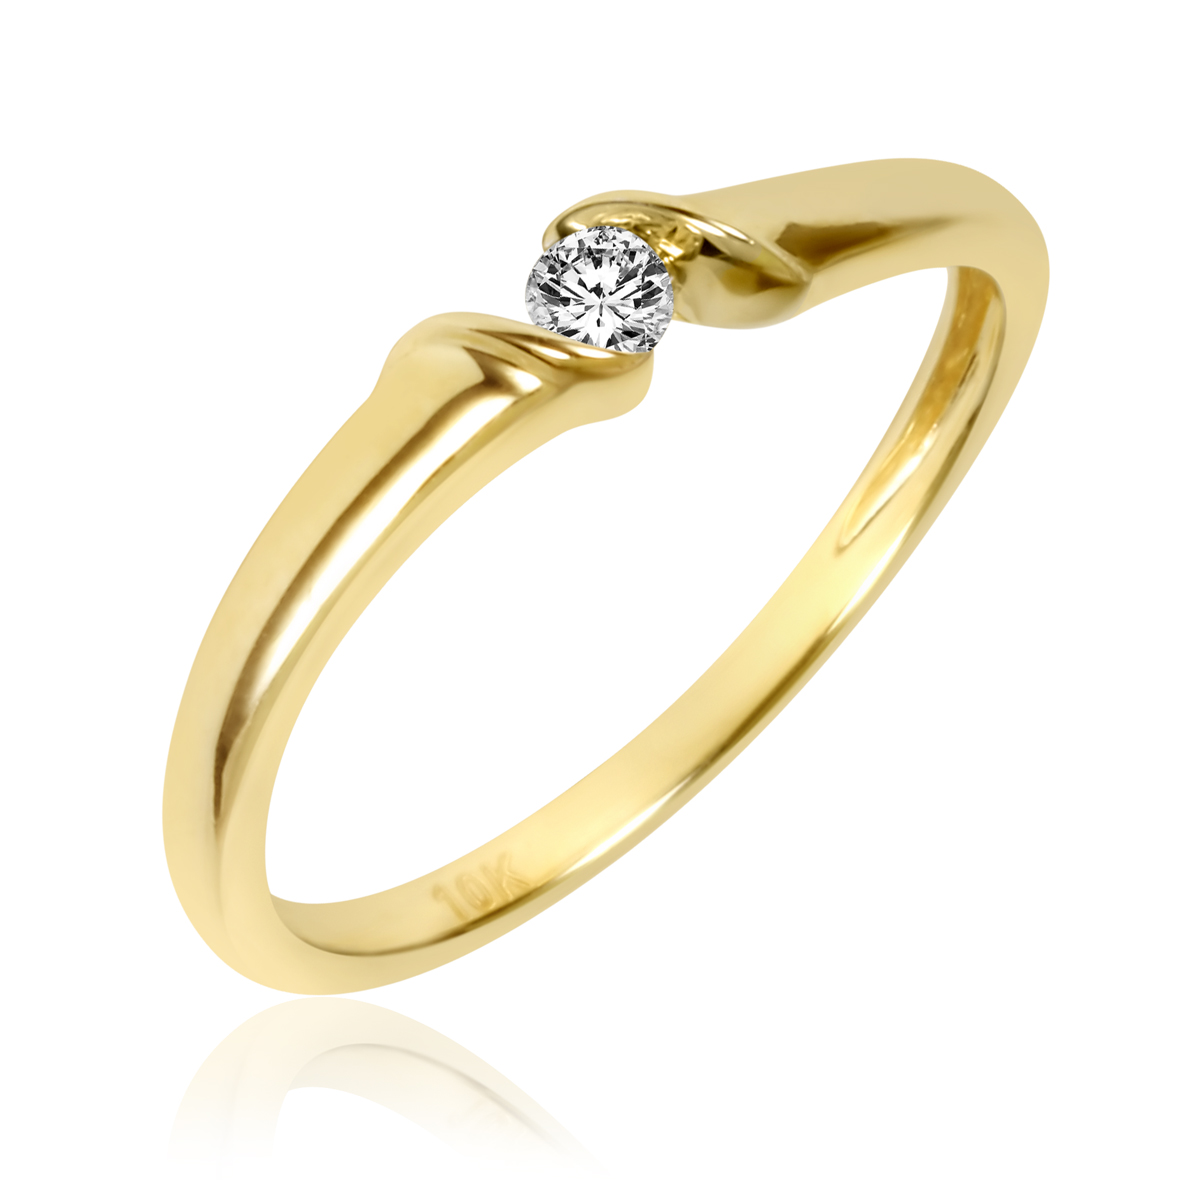 1/10 Carat T.W. Diamond Ladies Promise Ring 10K Yellow Gold